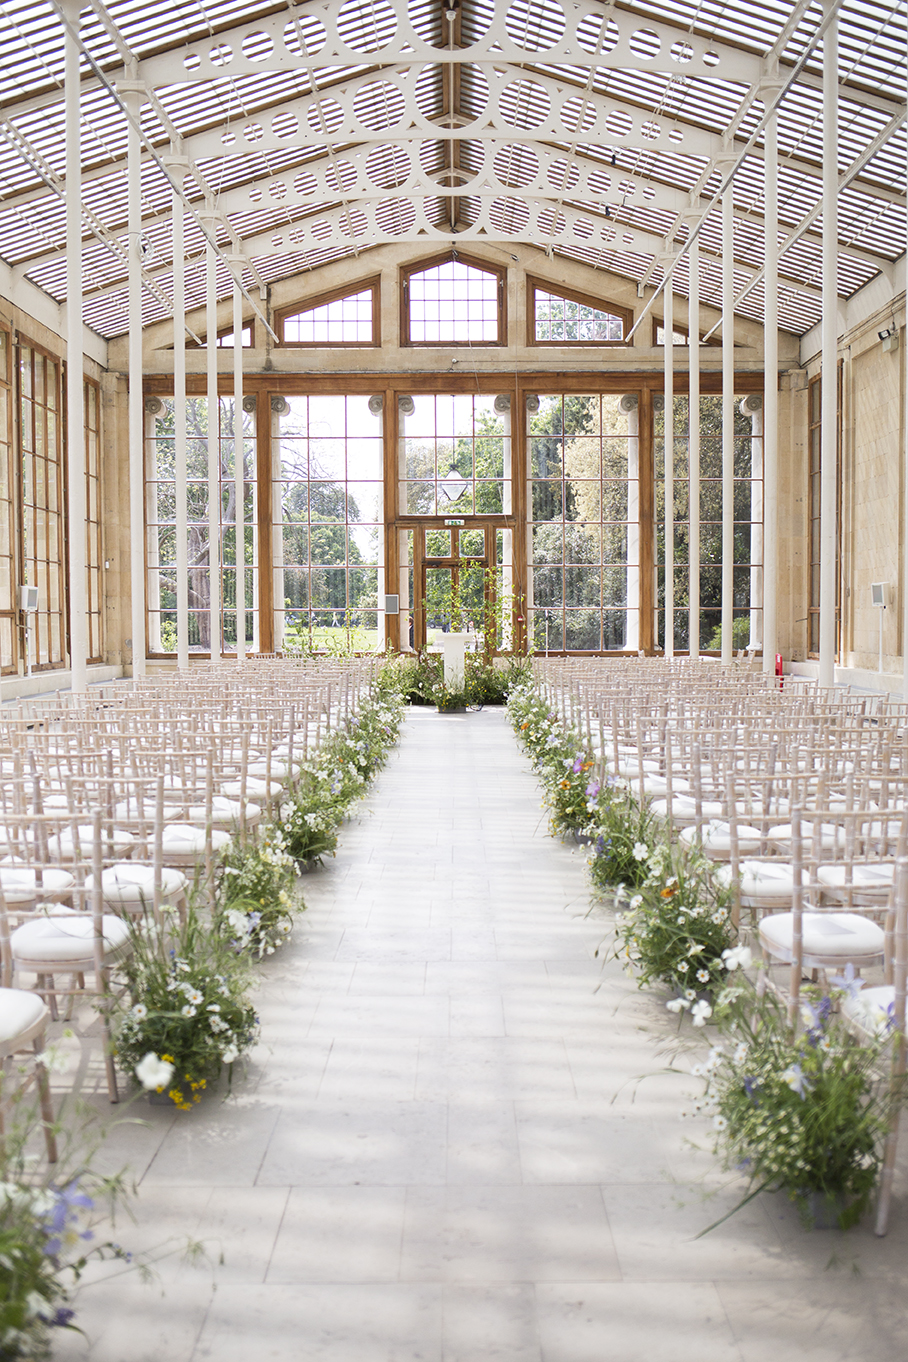 Alpine-inspired aisle arrangements for Hannah & Gianluca in the  Nash Conservatory  at  Kew Gardens